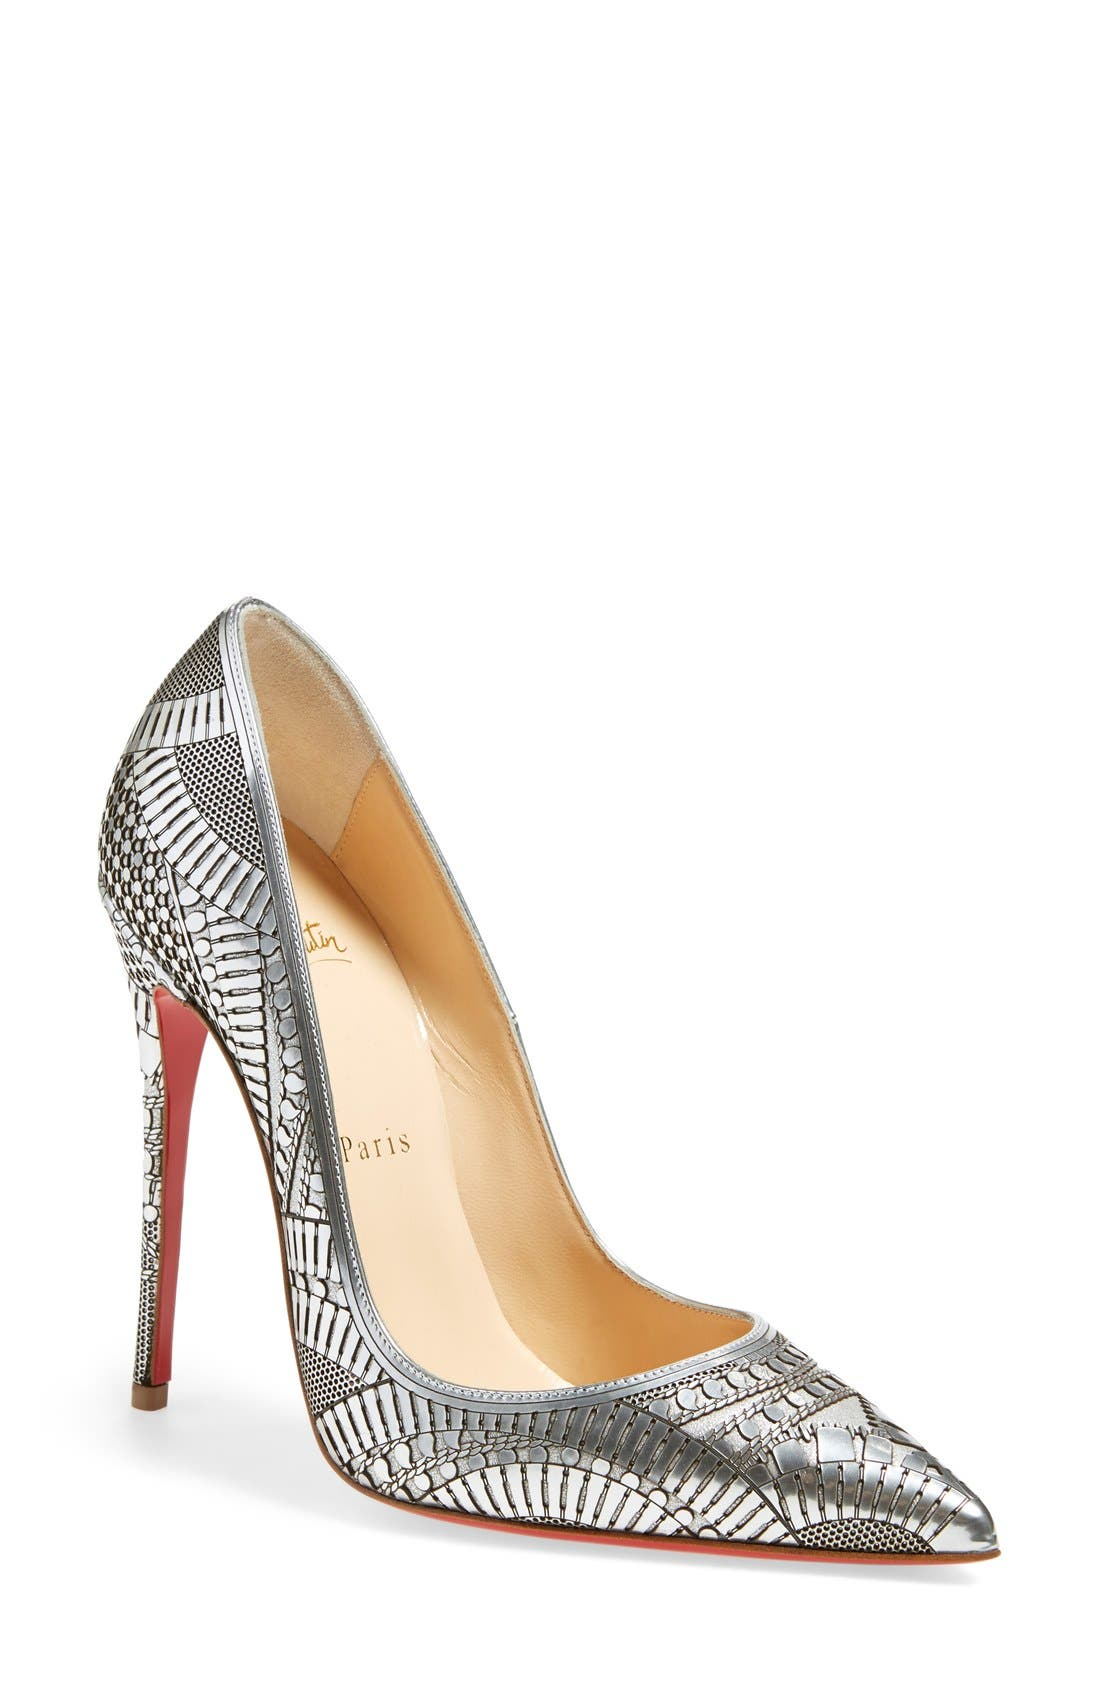 Main Image - Christian Louboutin 'Kristali' Laser Cut Pointy Toe Pump